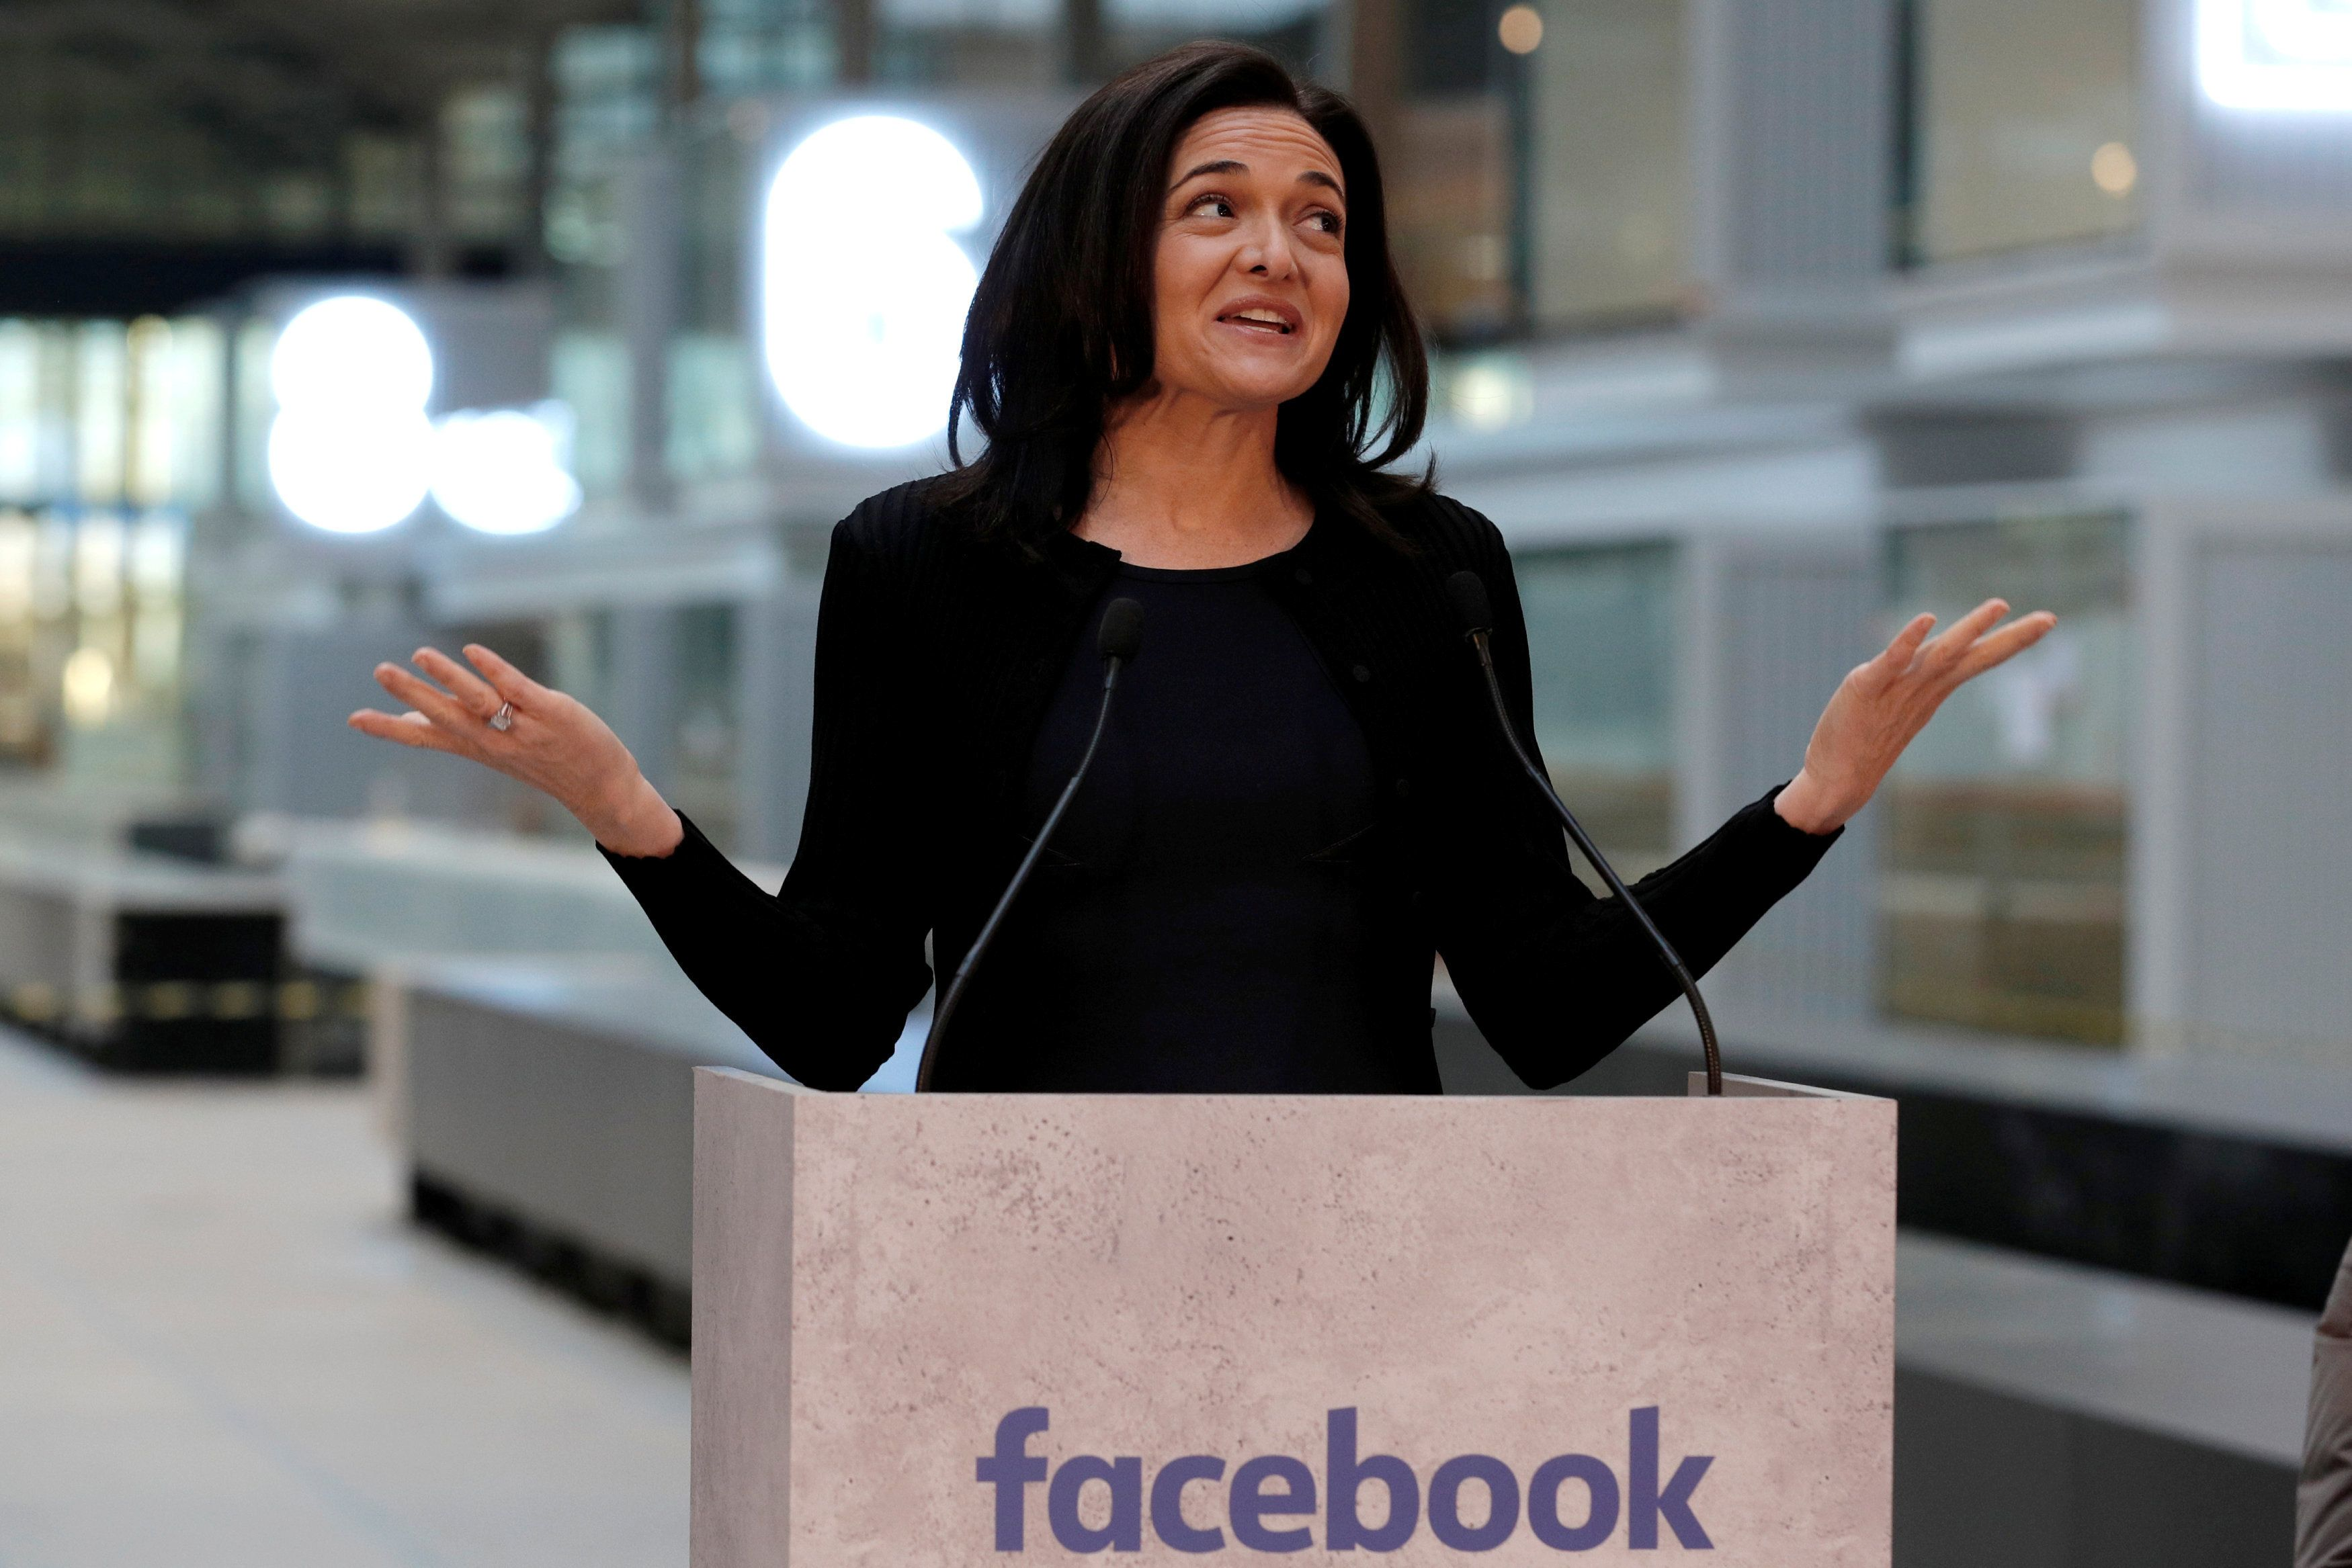 Sheryl Sandberg, Chief Operating Officer of Facebook, delivers a speech during a visit in Paris, France, January 17, 2017, at a start-up companies gathering at Paris' Station F site as the company tries to head off tougher regulation by Germany. REUTERS/Philippe Wojazer     TPX IMAGES OF THE DAY